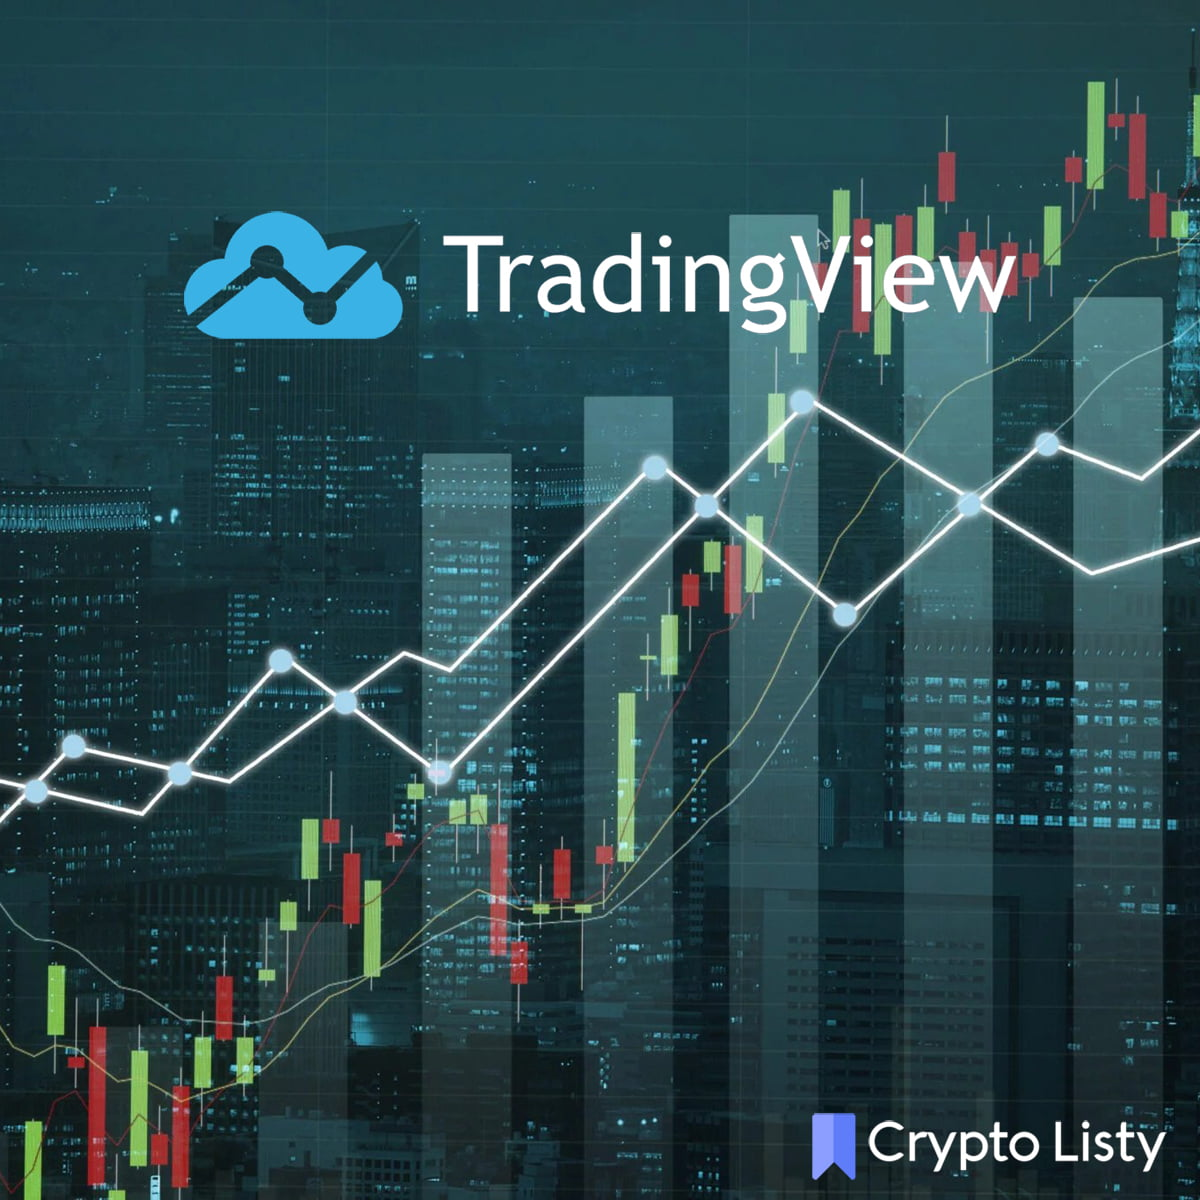 Trading view logo on a trading chart.